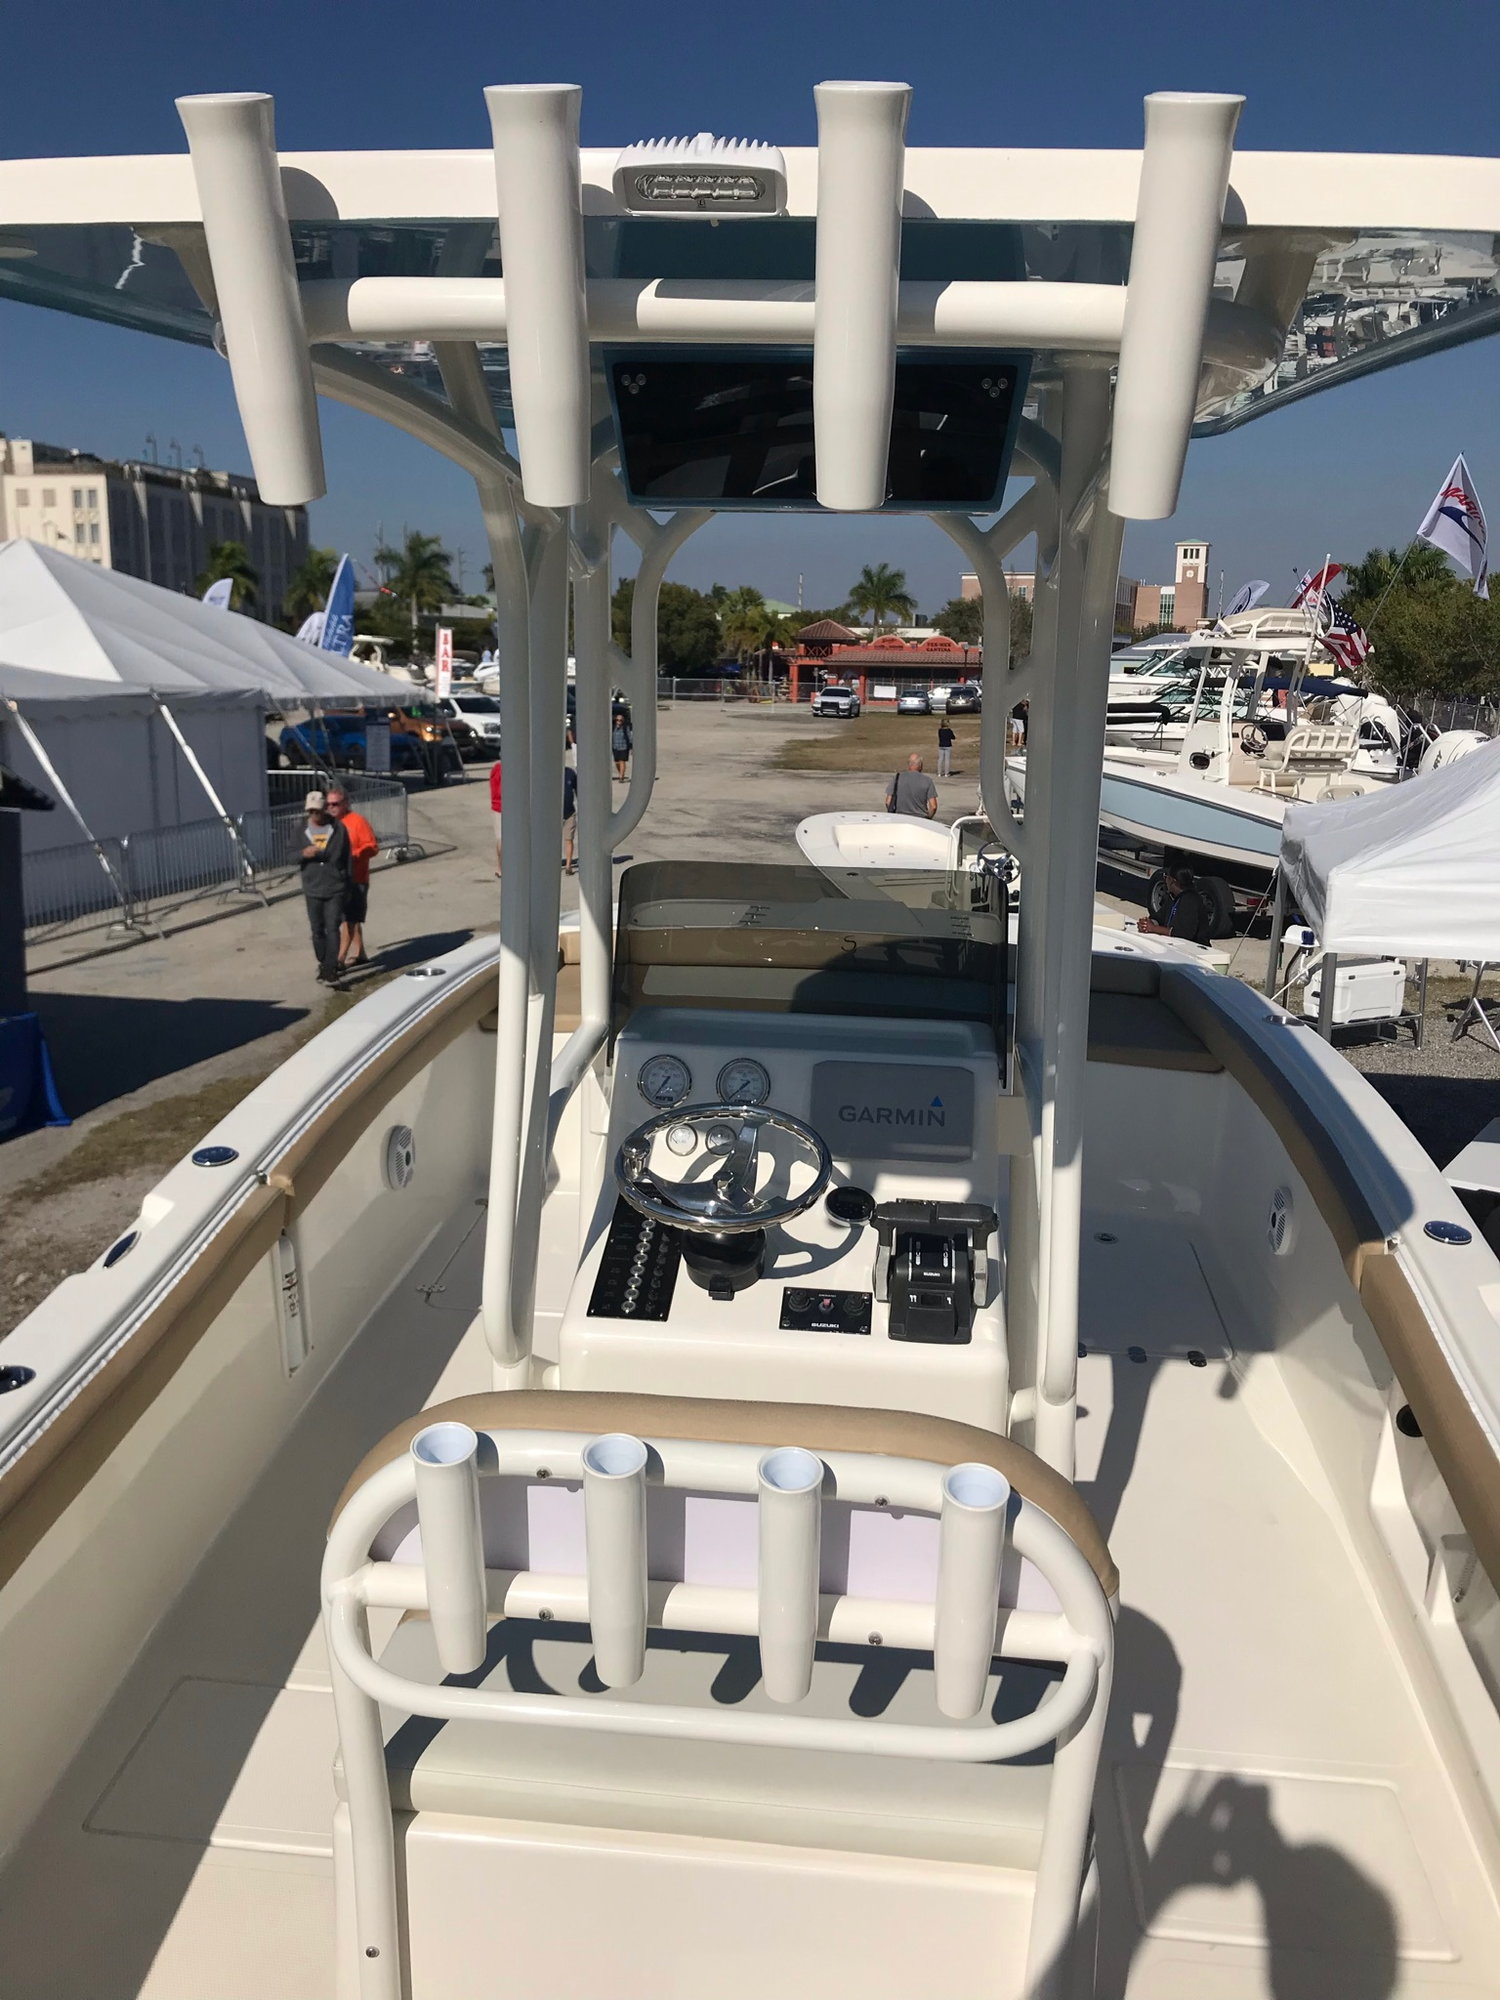 Best bang for the $$$ new boat for